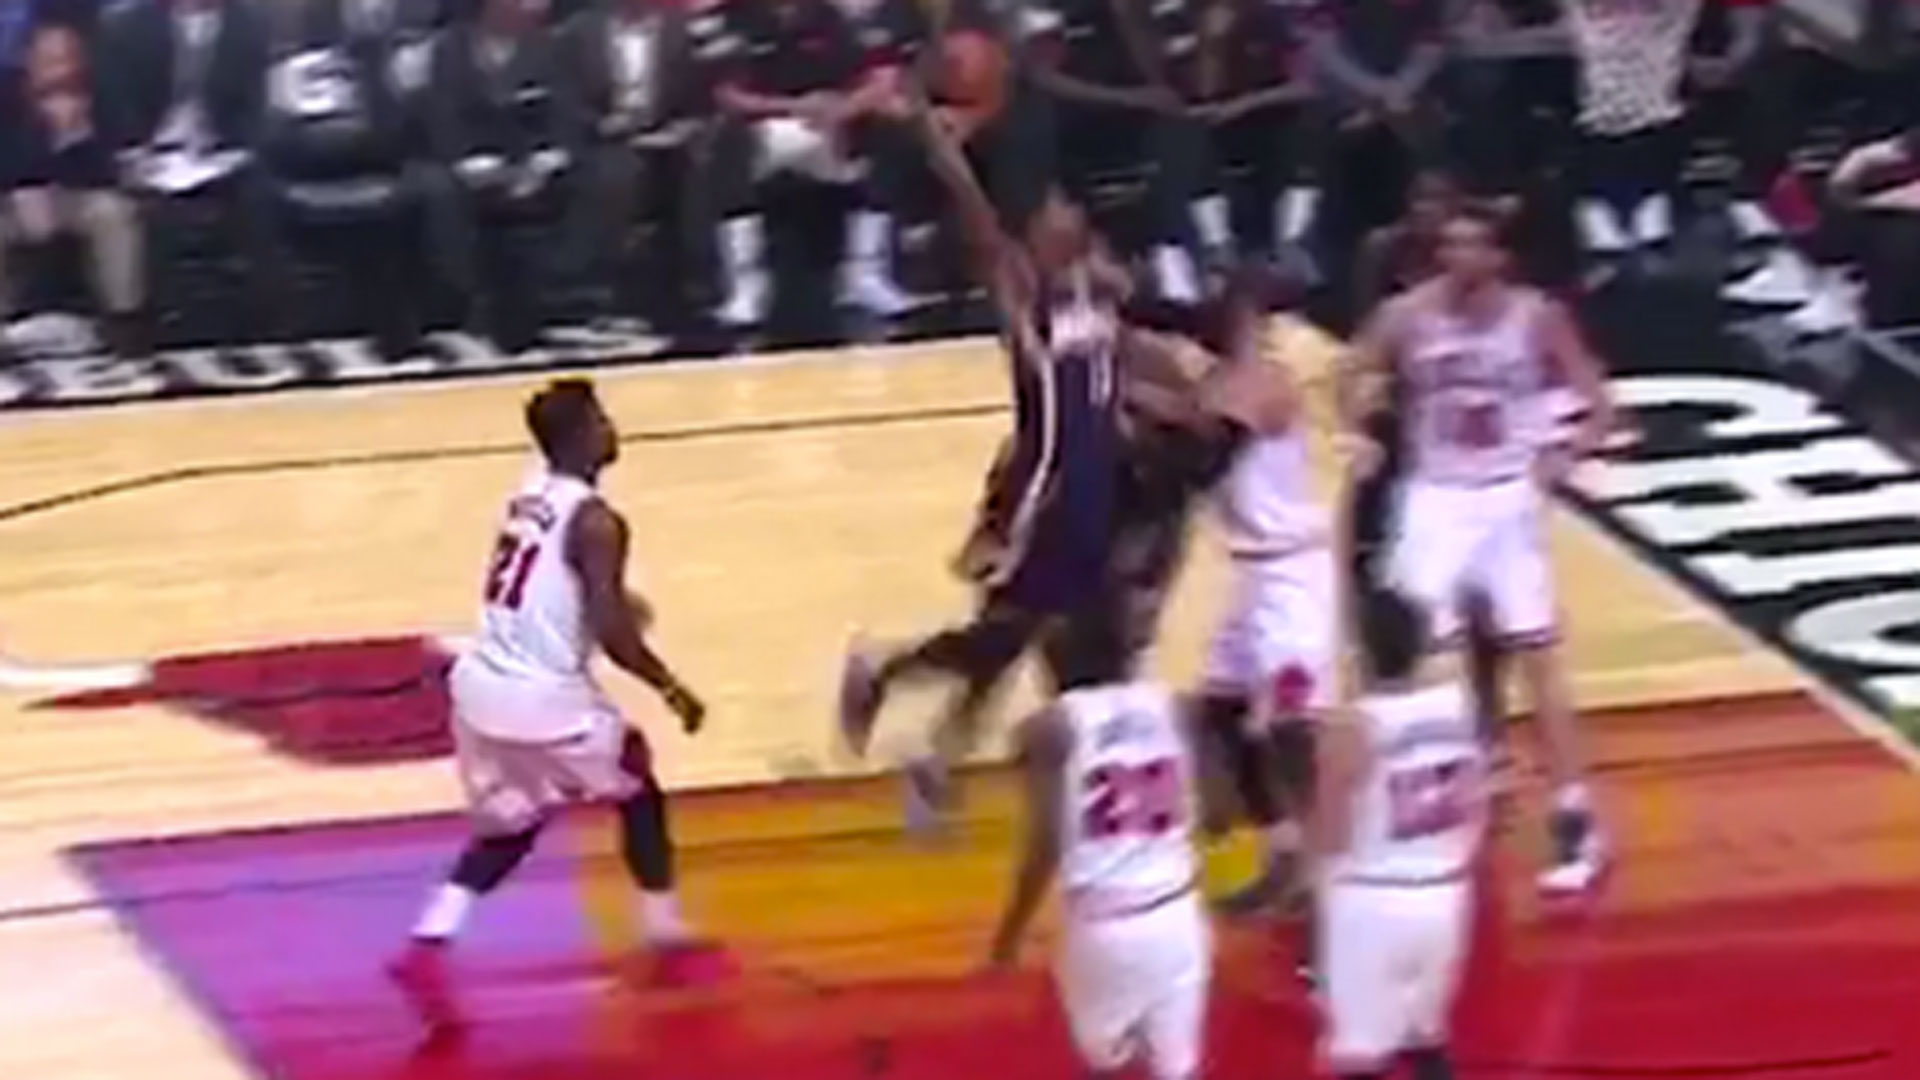 Paul george returns to form with huge dunk on the bulls nba paul george returns to form with huge dunk on the bulls nba sporting news voltagebd Image collections